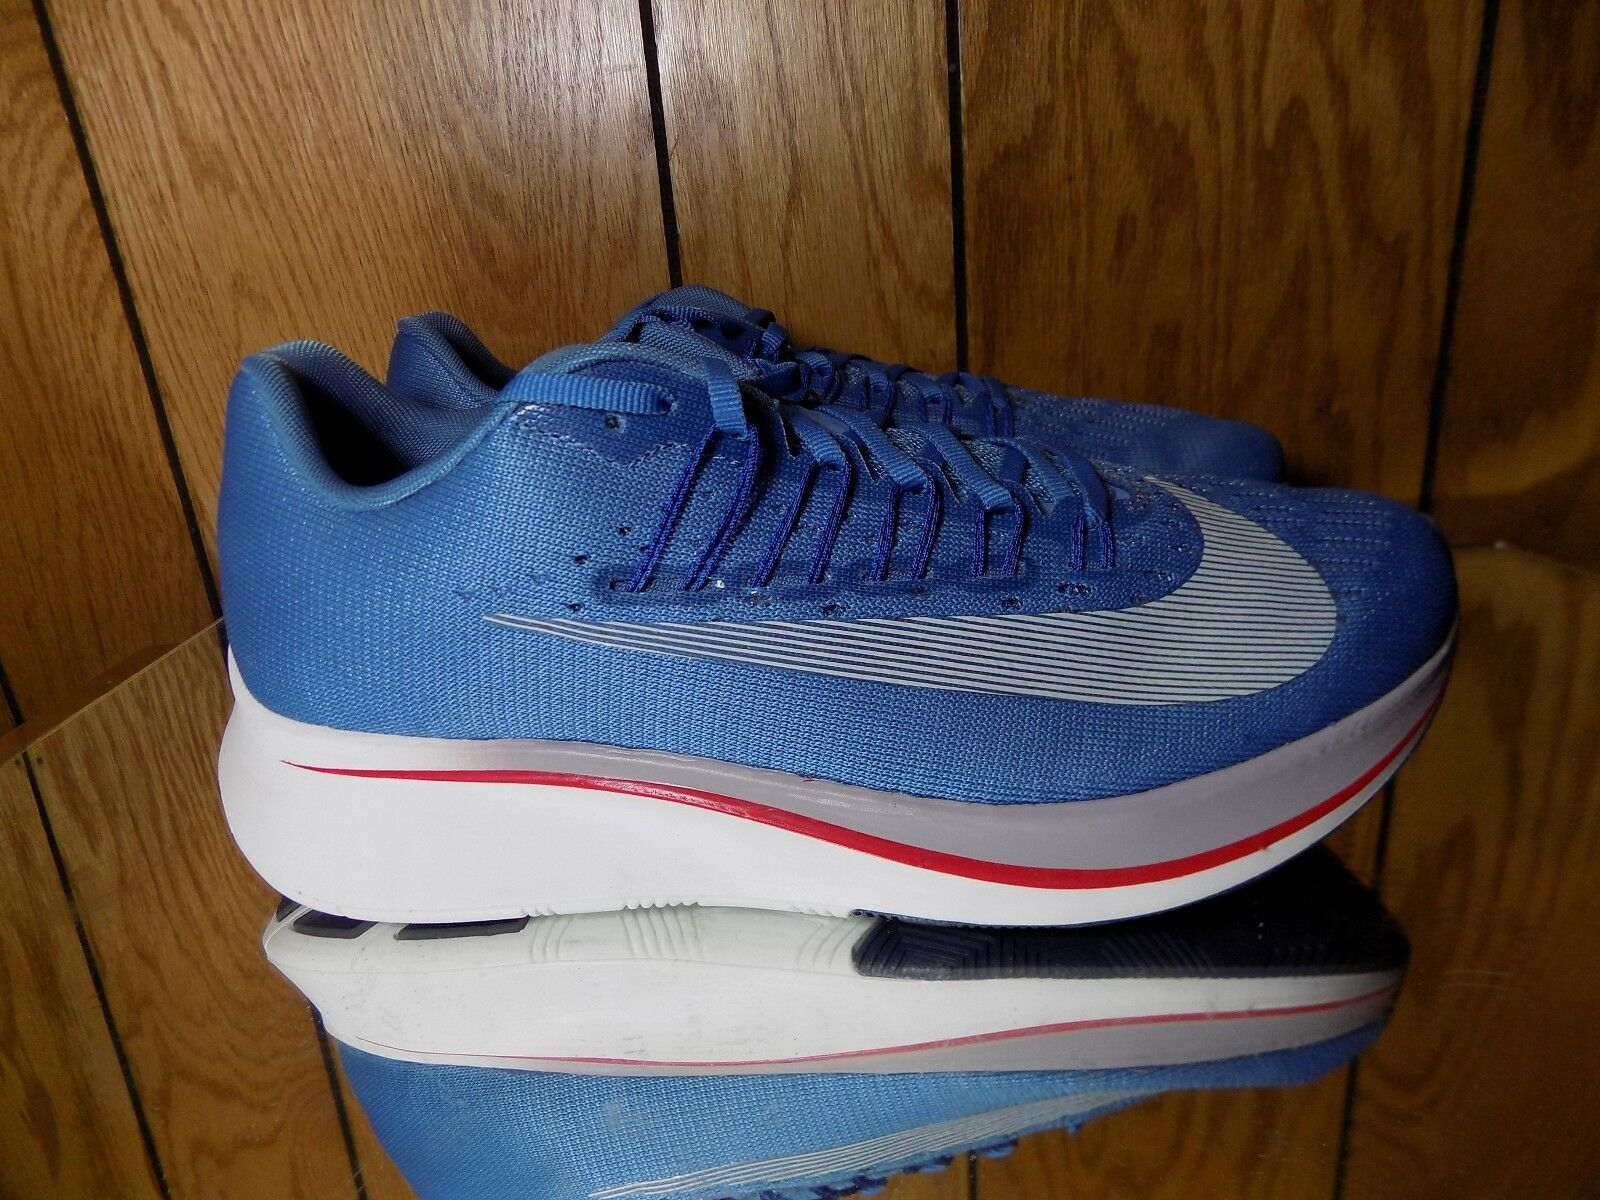 Nike Zoom Fly Storm bluee White Men Running shoes 880848-402 s. 7.5